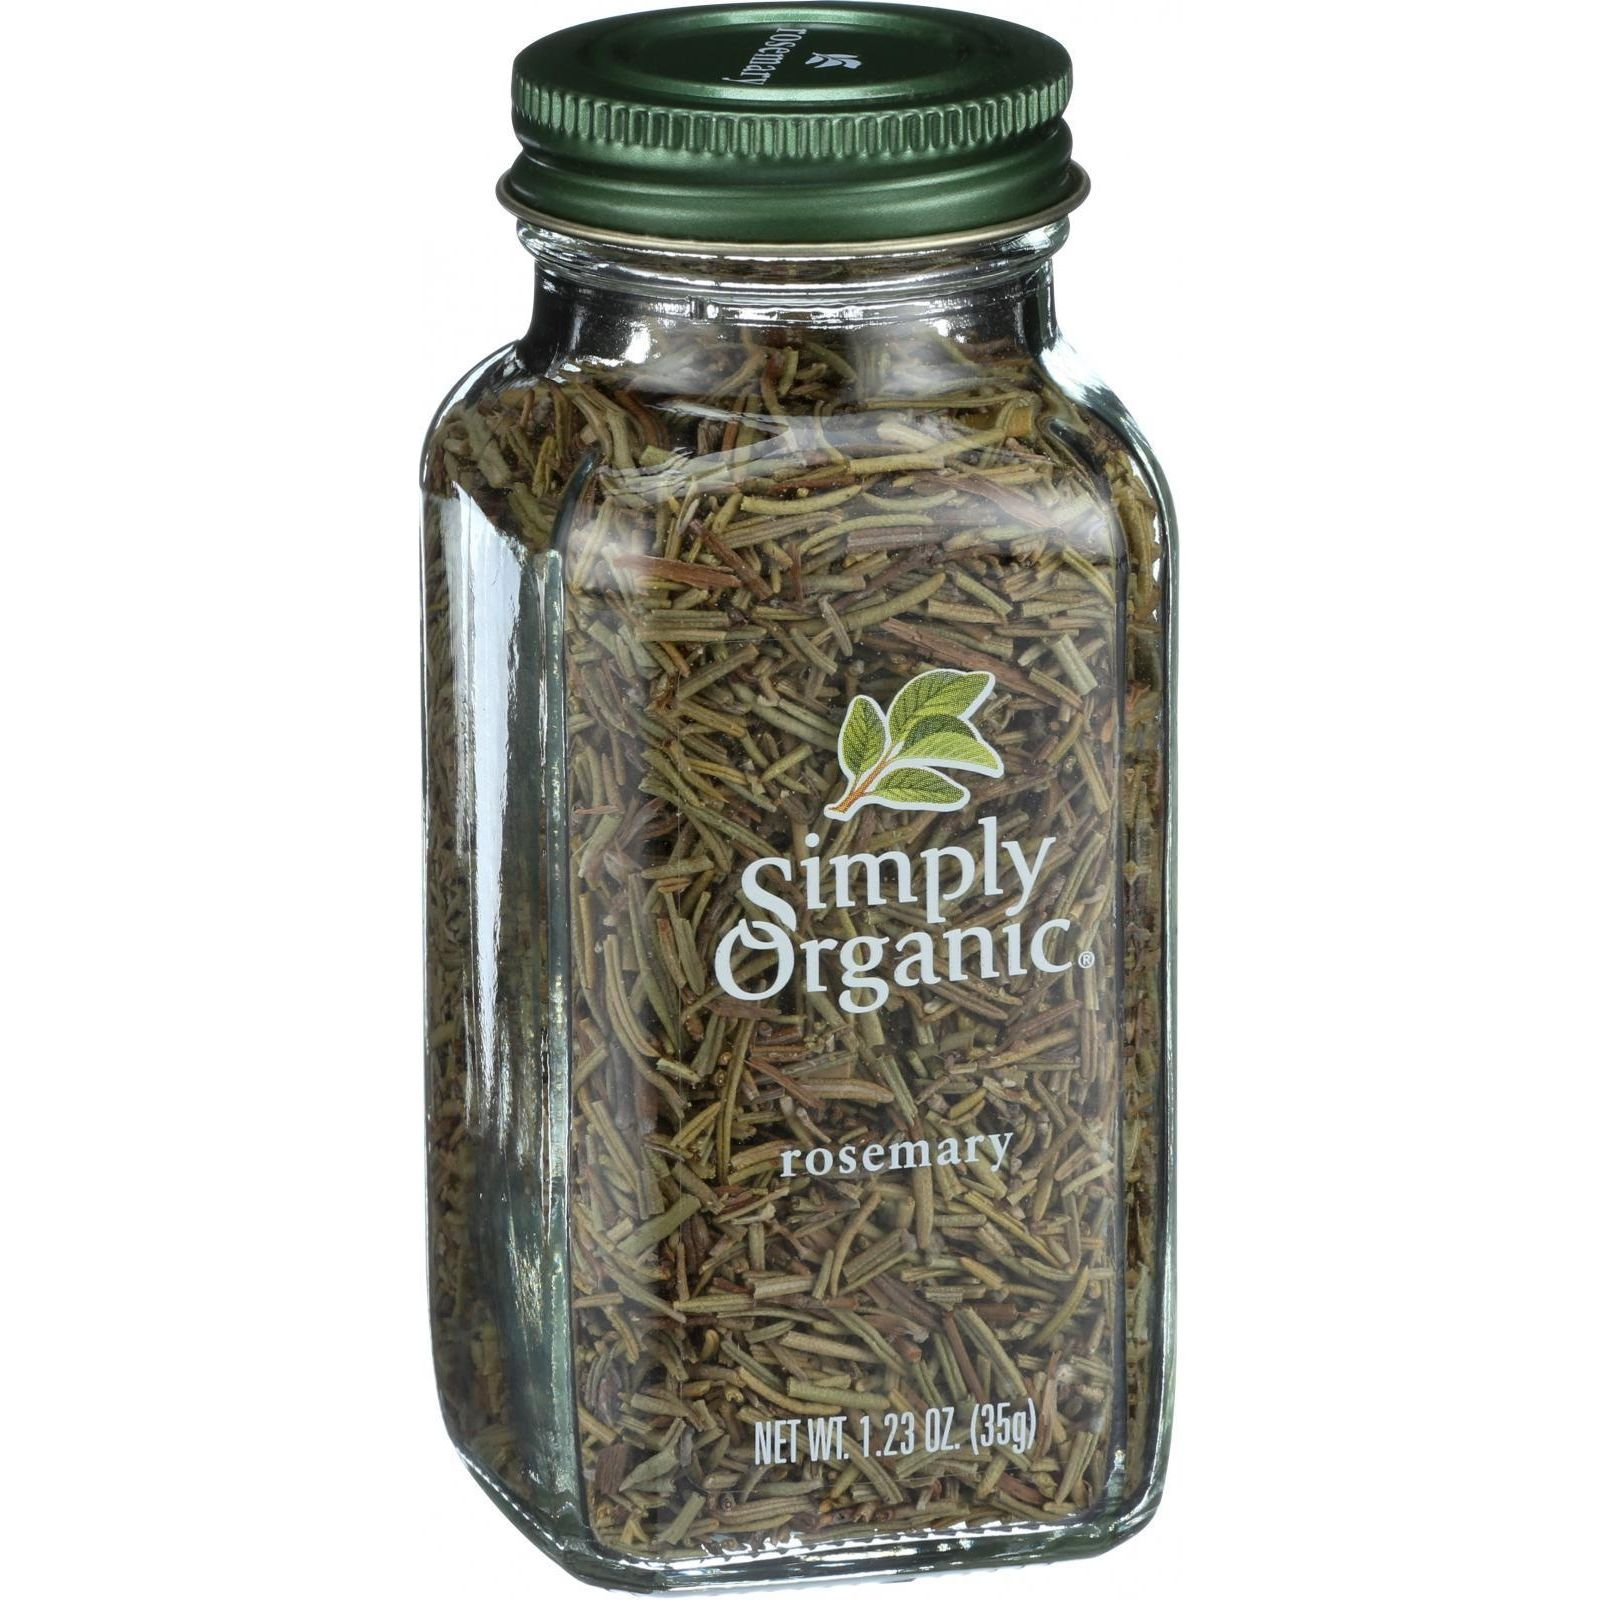 Simply Organic Rosemary Leaf- Organic - Whole - 1.23 oz (Pack of 4)